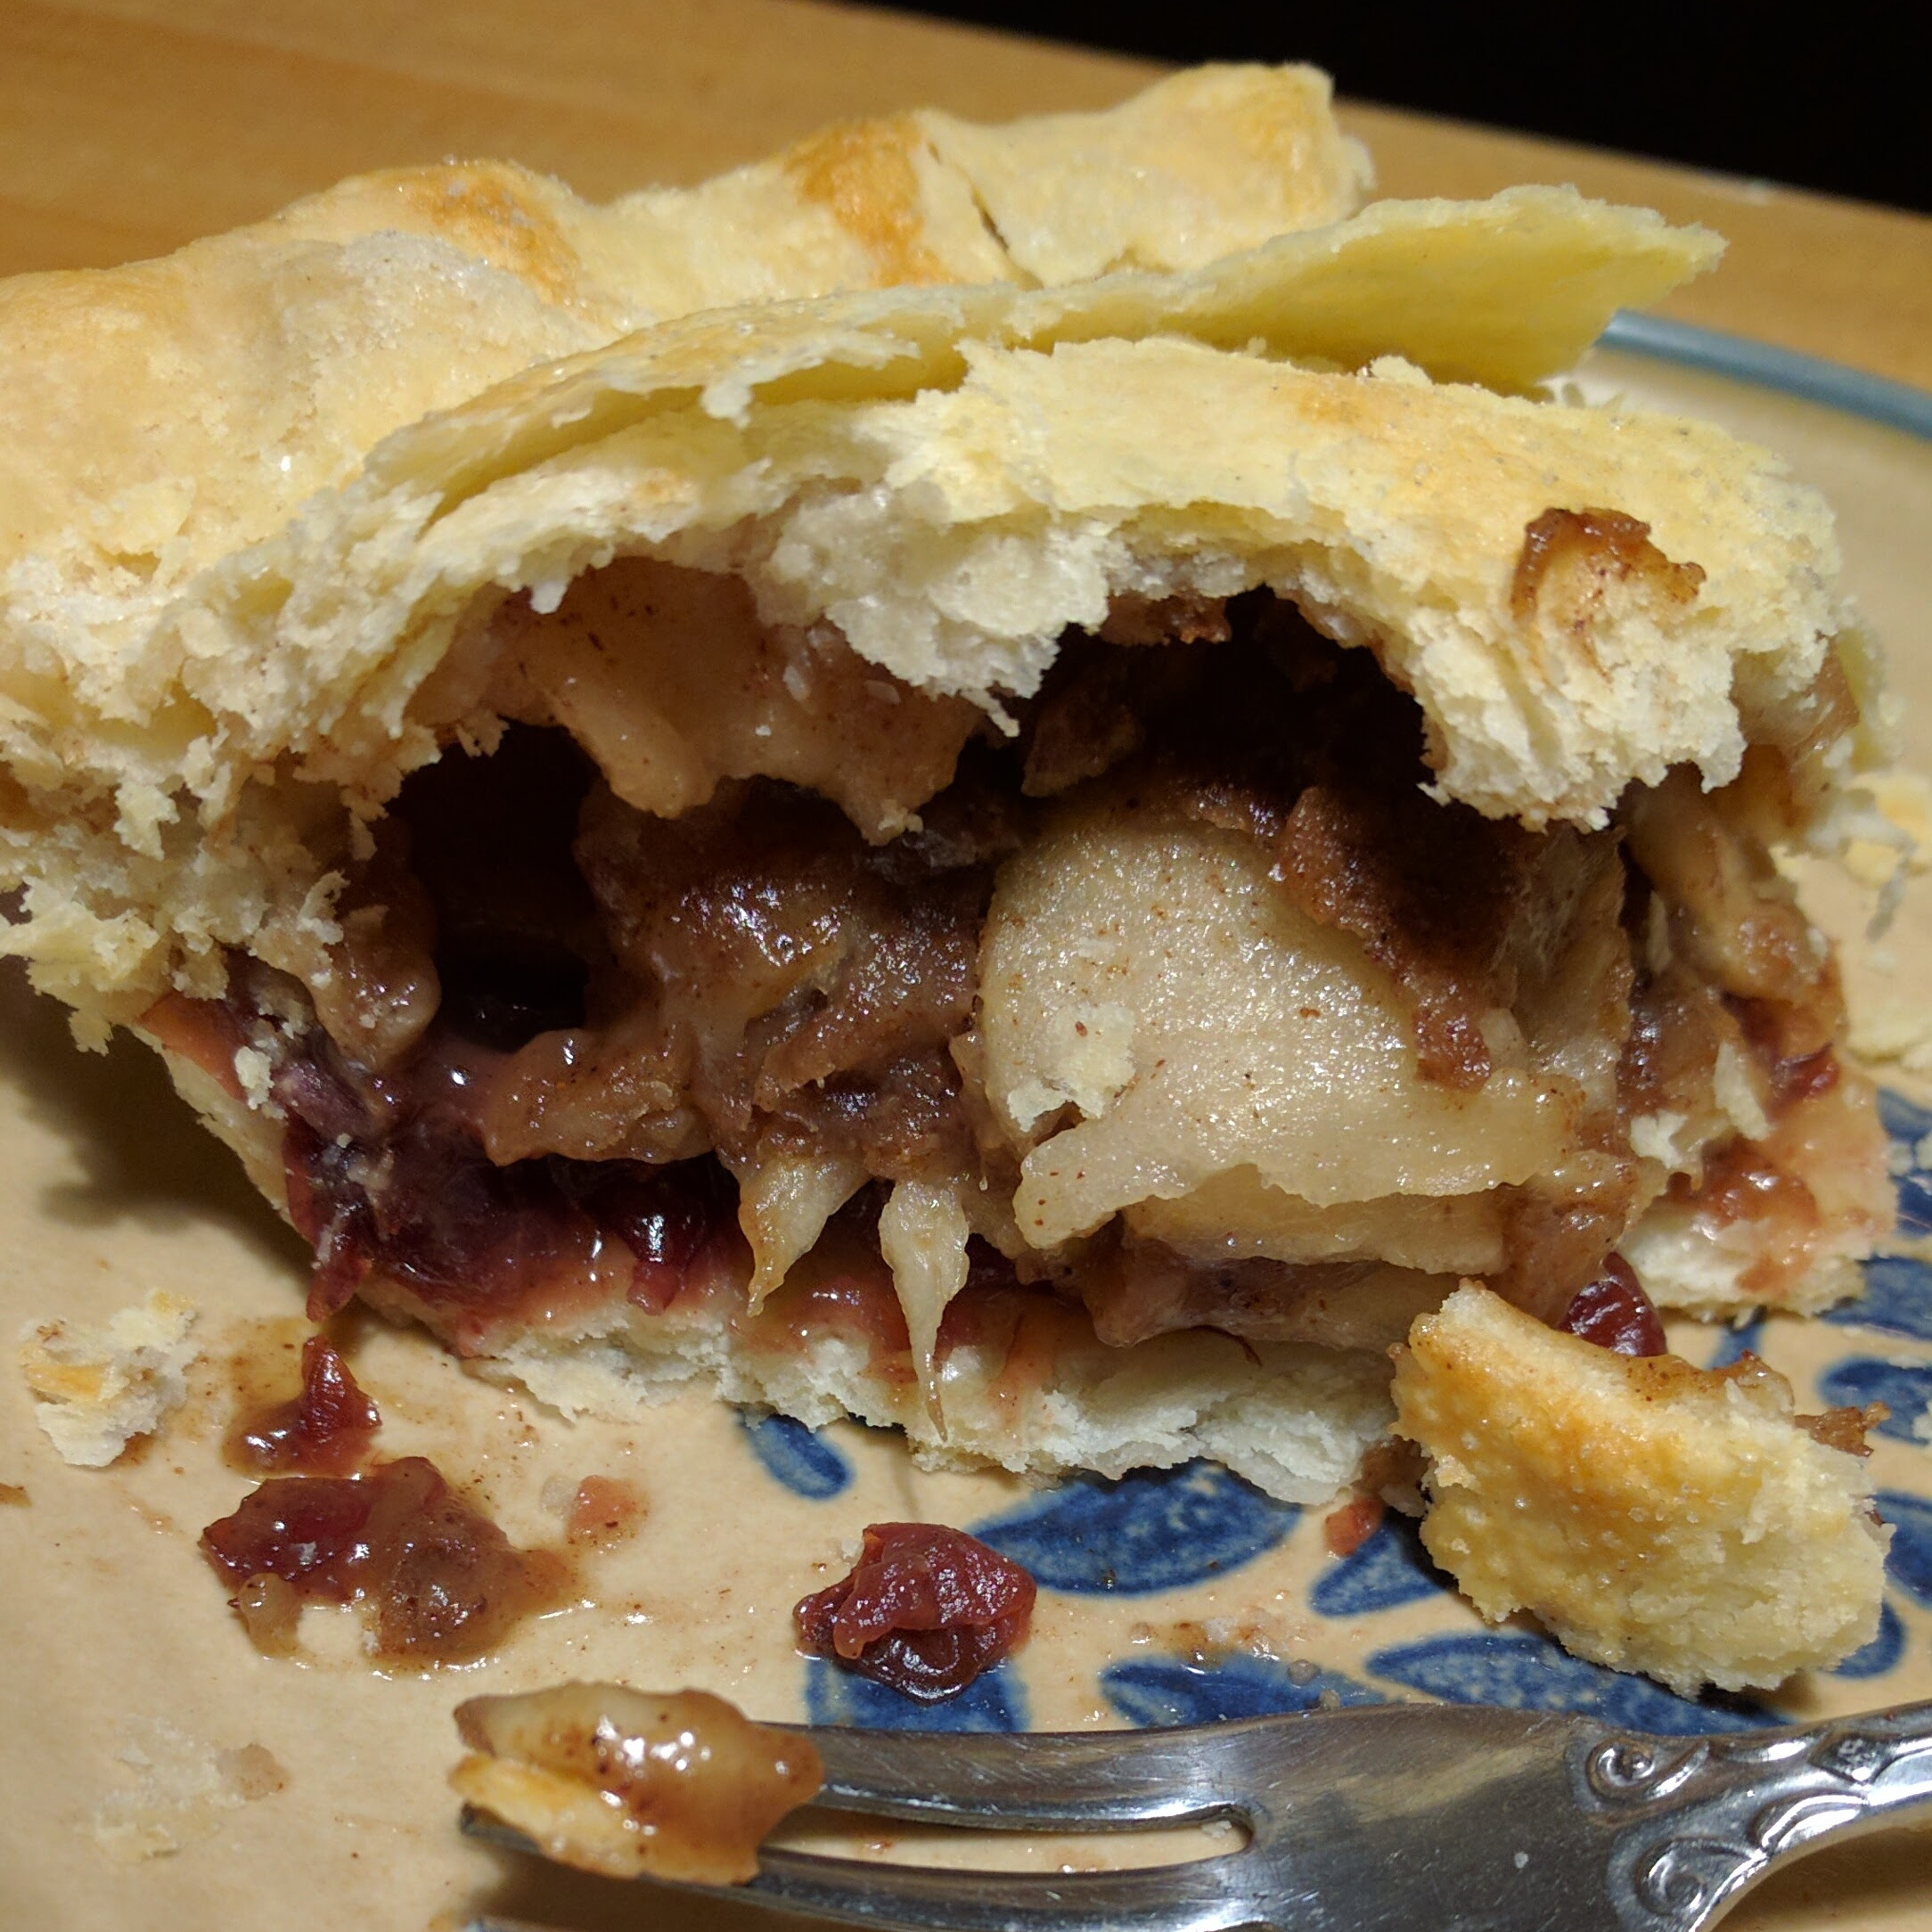 Apple Cranberry   Our delicious apple pie with a layer of cranberries on the bottom. It's a must try! $18